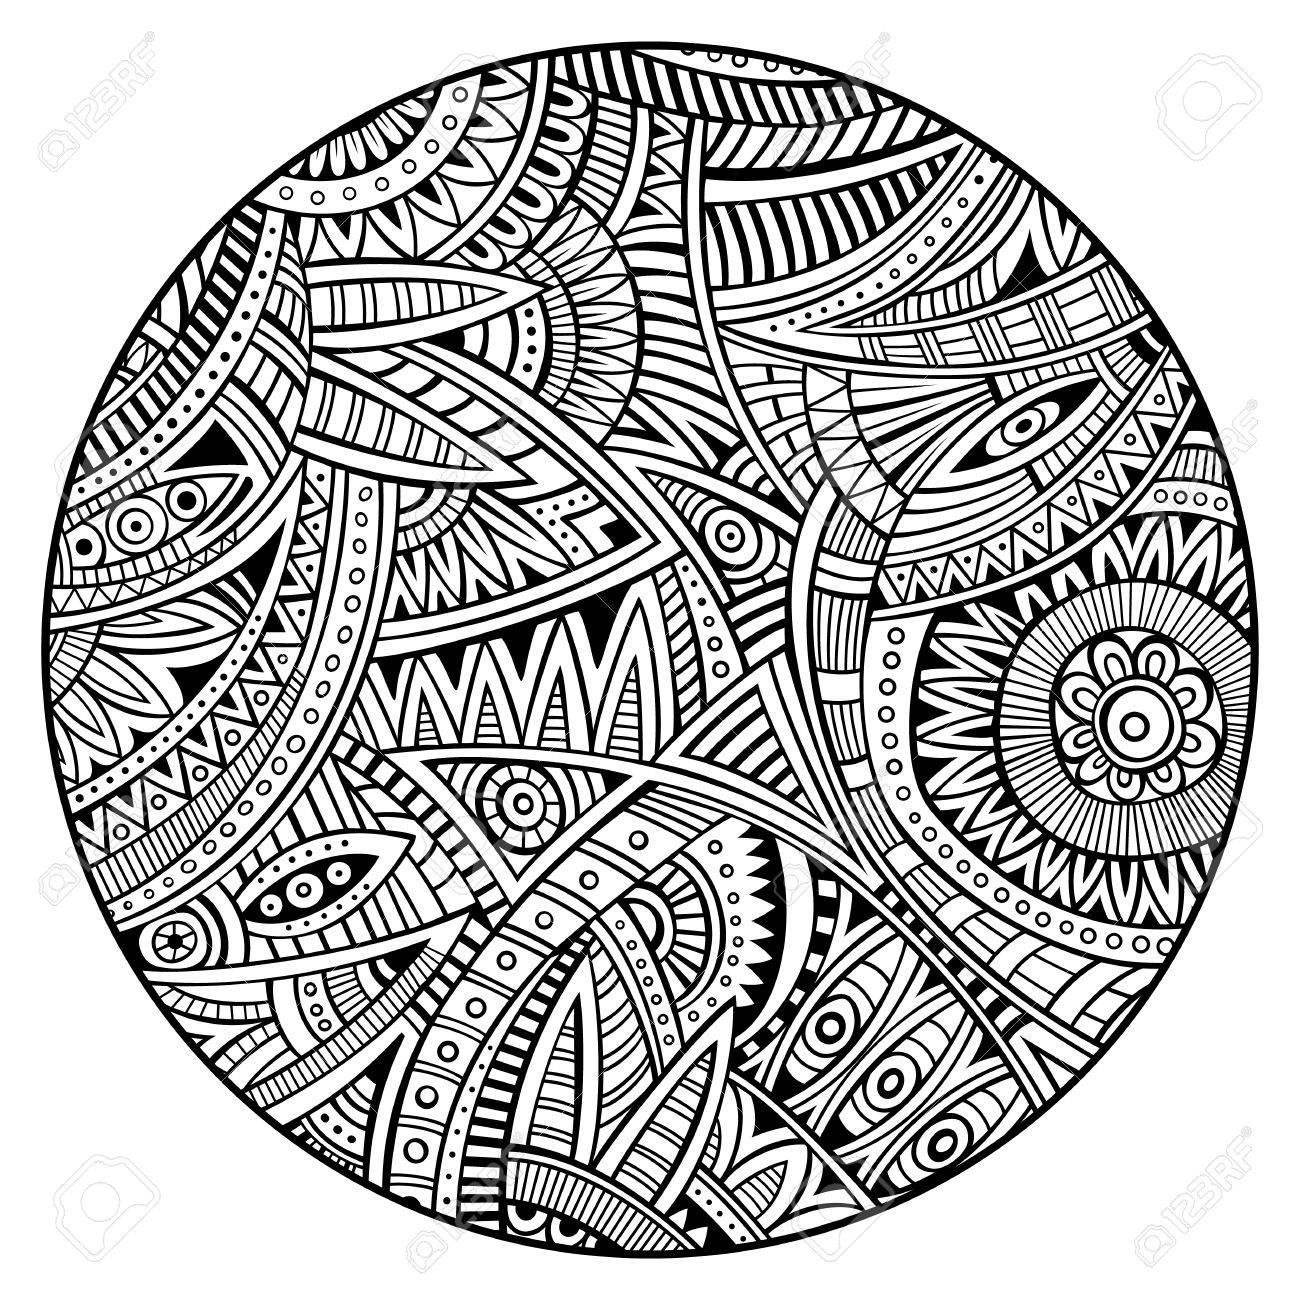 vector abstract decorative hand drawn ethnic circle background